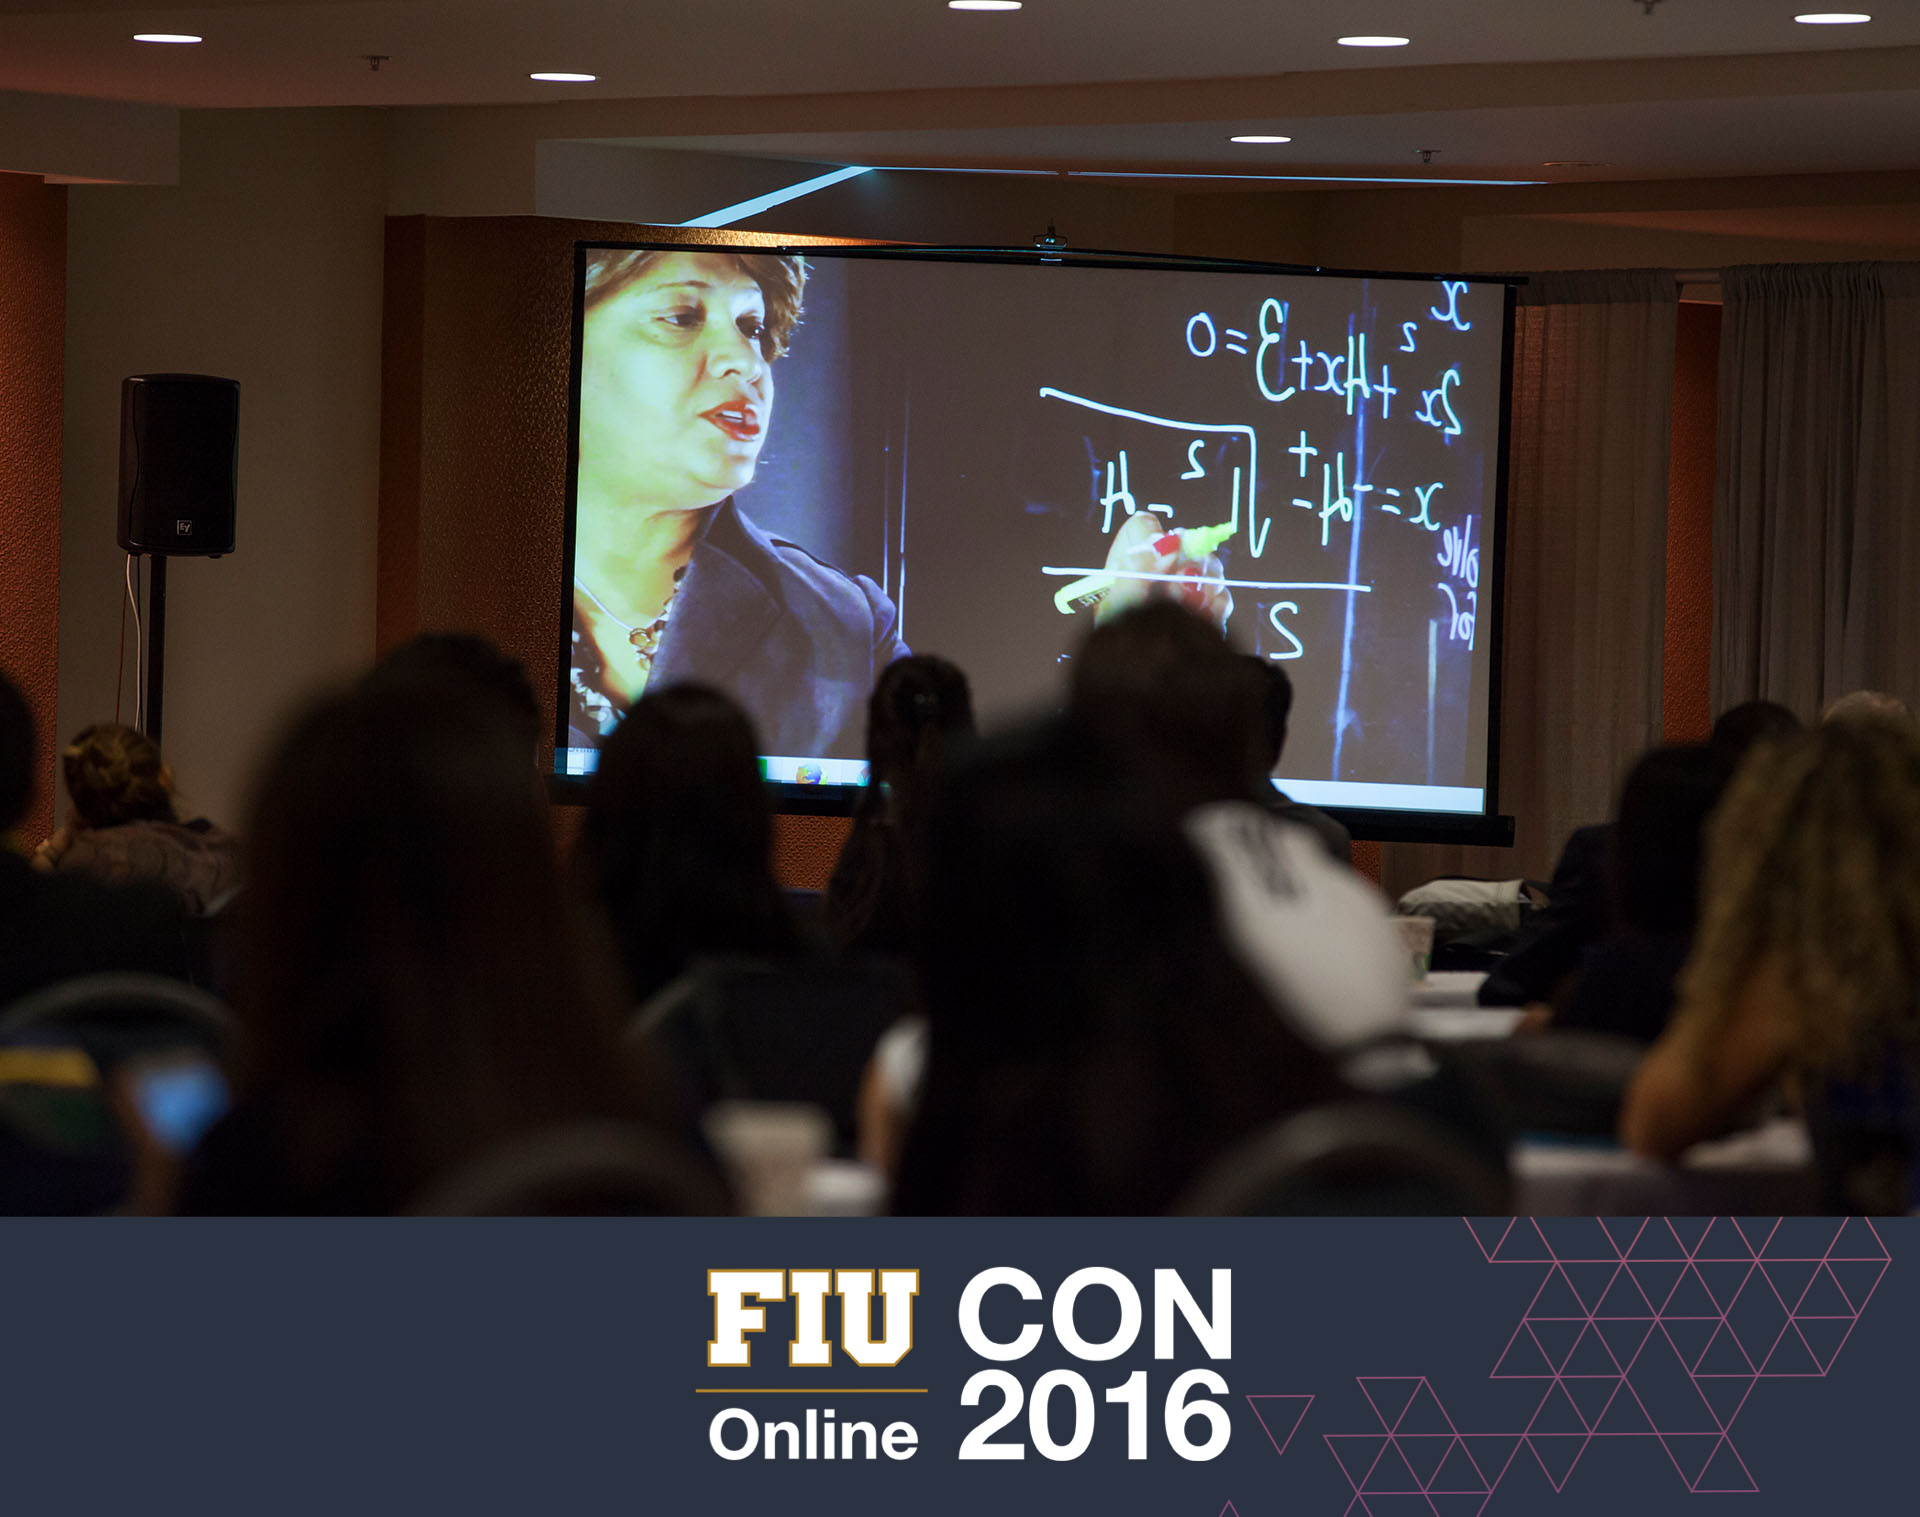 183.jpg FIU Online conference photos